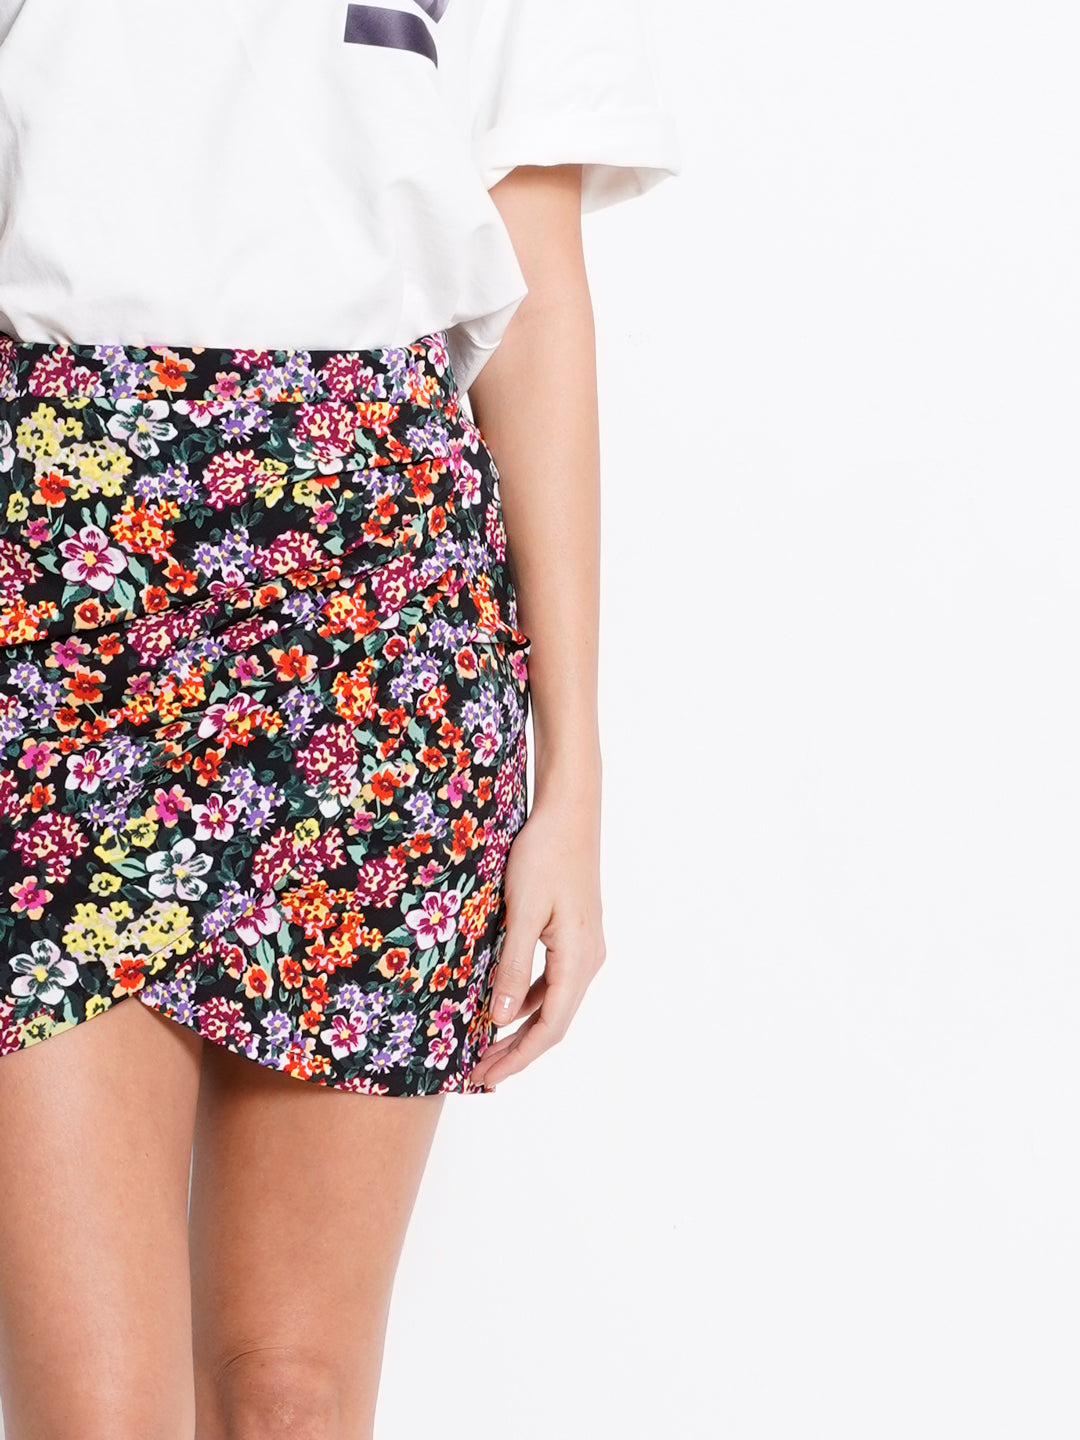 Women Floral Short Skirt With Slit - Black - OHH20F2238